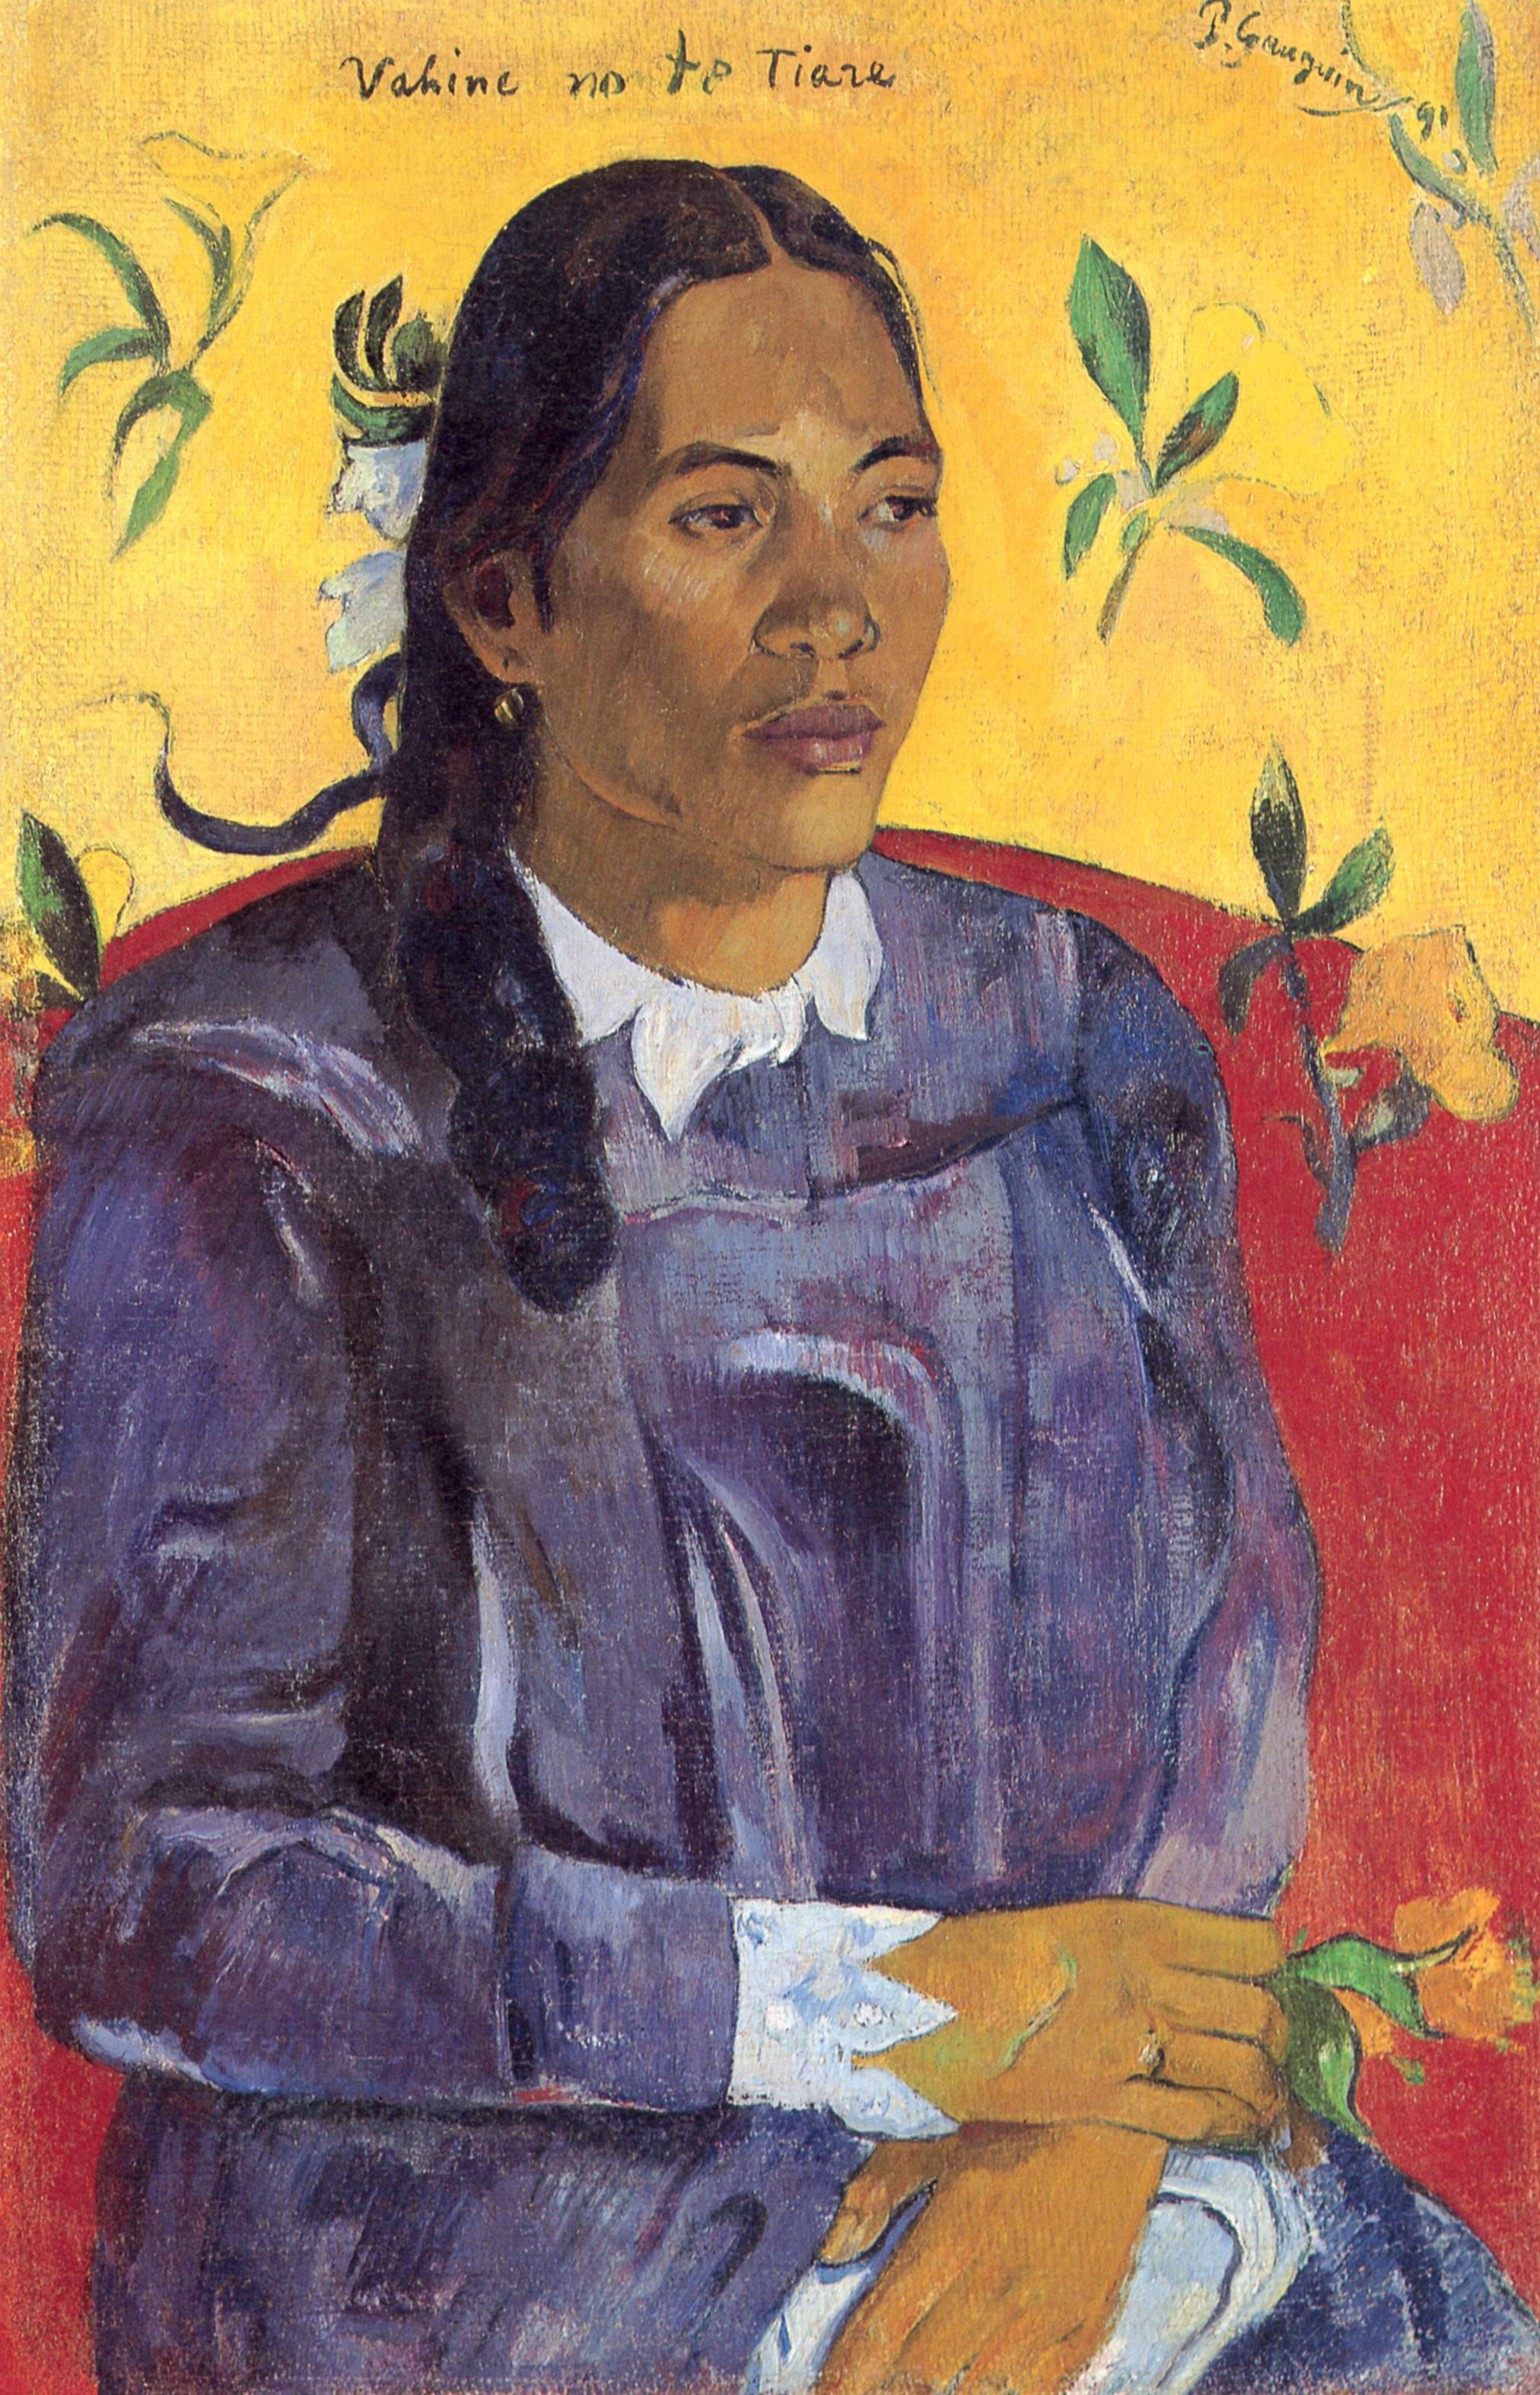 Paul Gauguin,  Vahine no te Tiare (Woman with a Flower),  1891